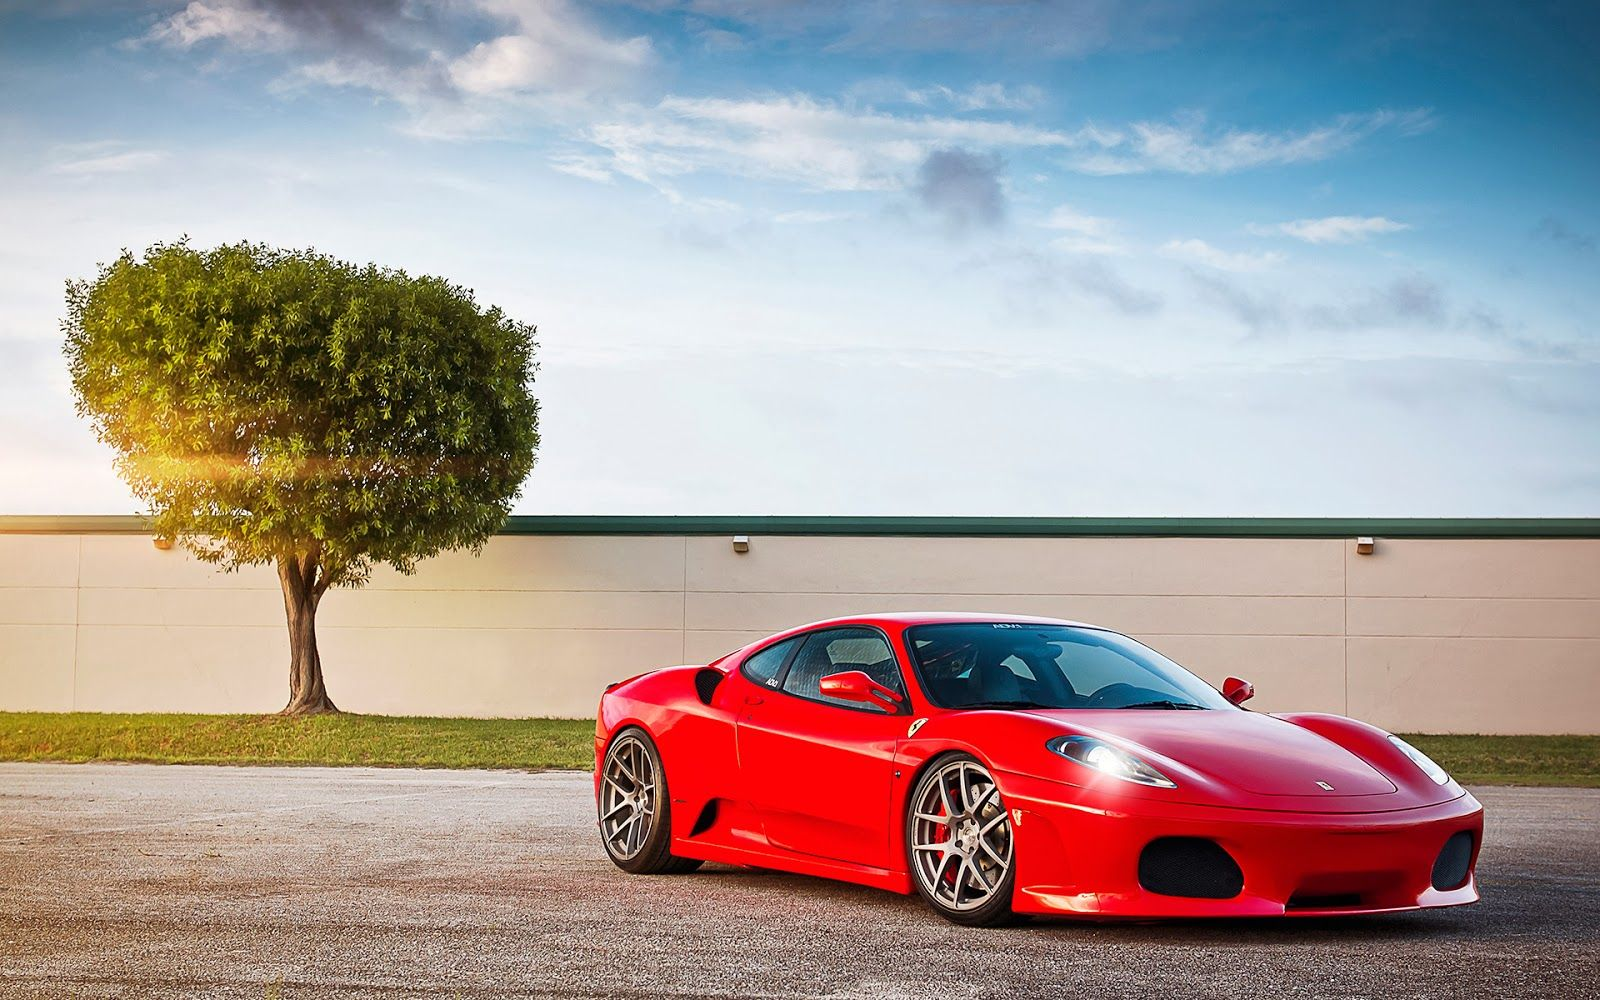 Best and beautiful car wallpapers for your desktop